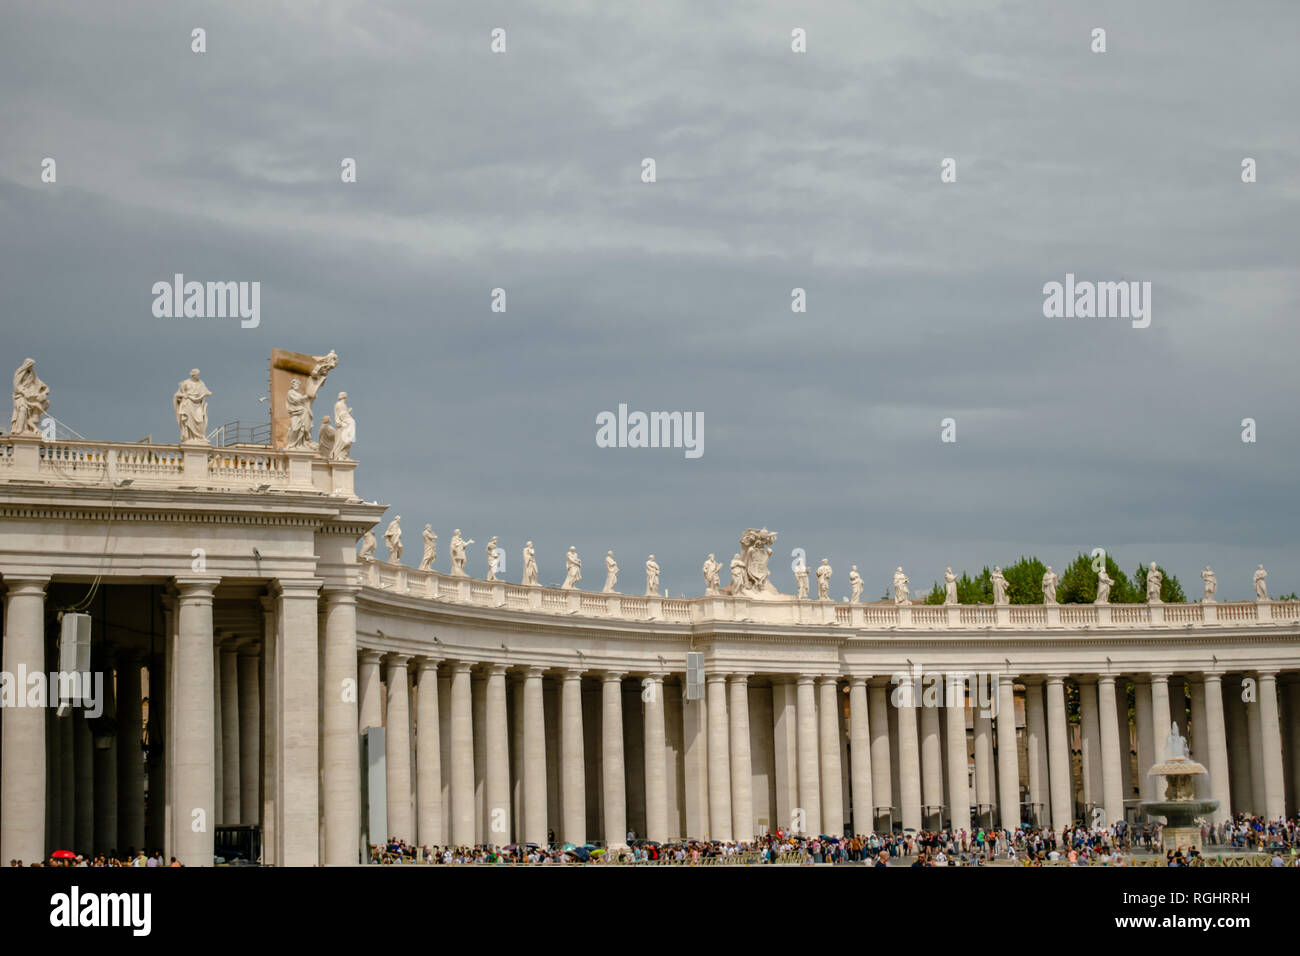 Right Wing of Saint Peter's Square, Vatican, Italy - Stock Image